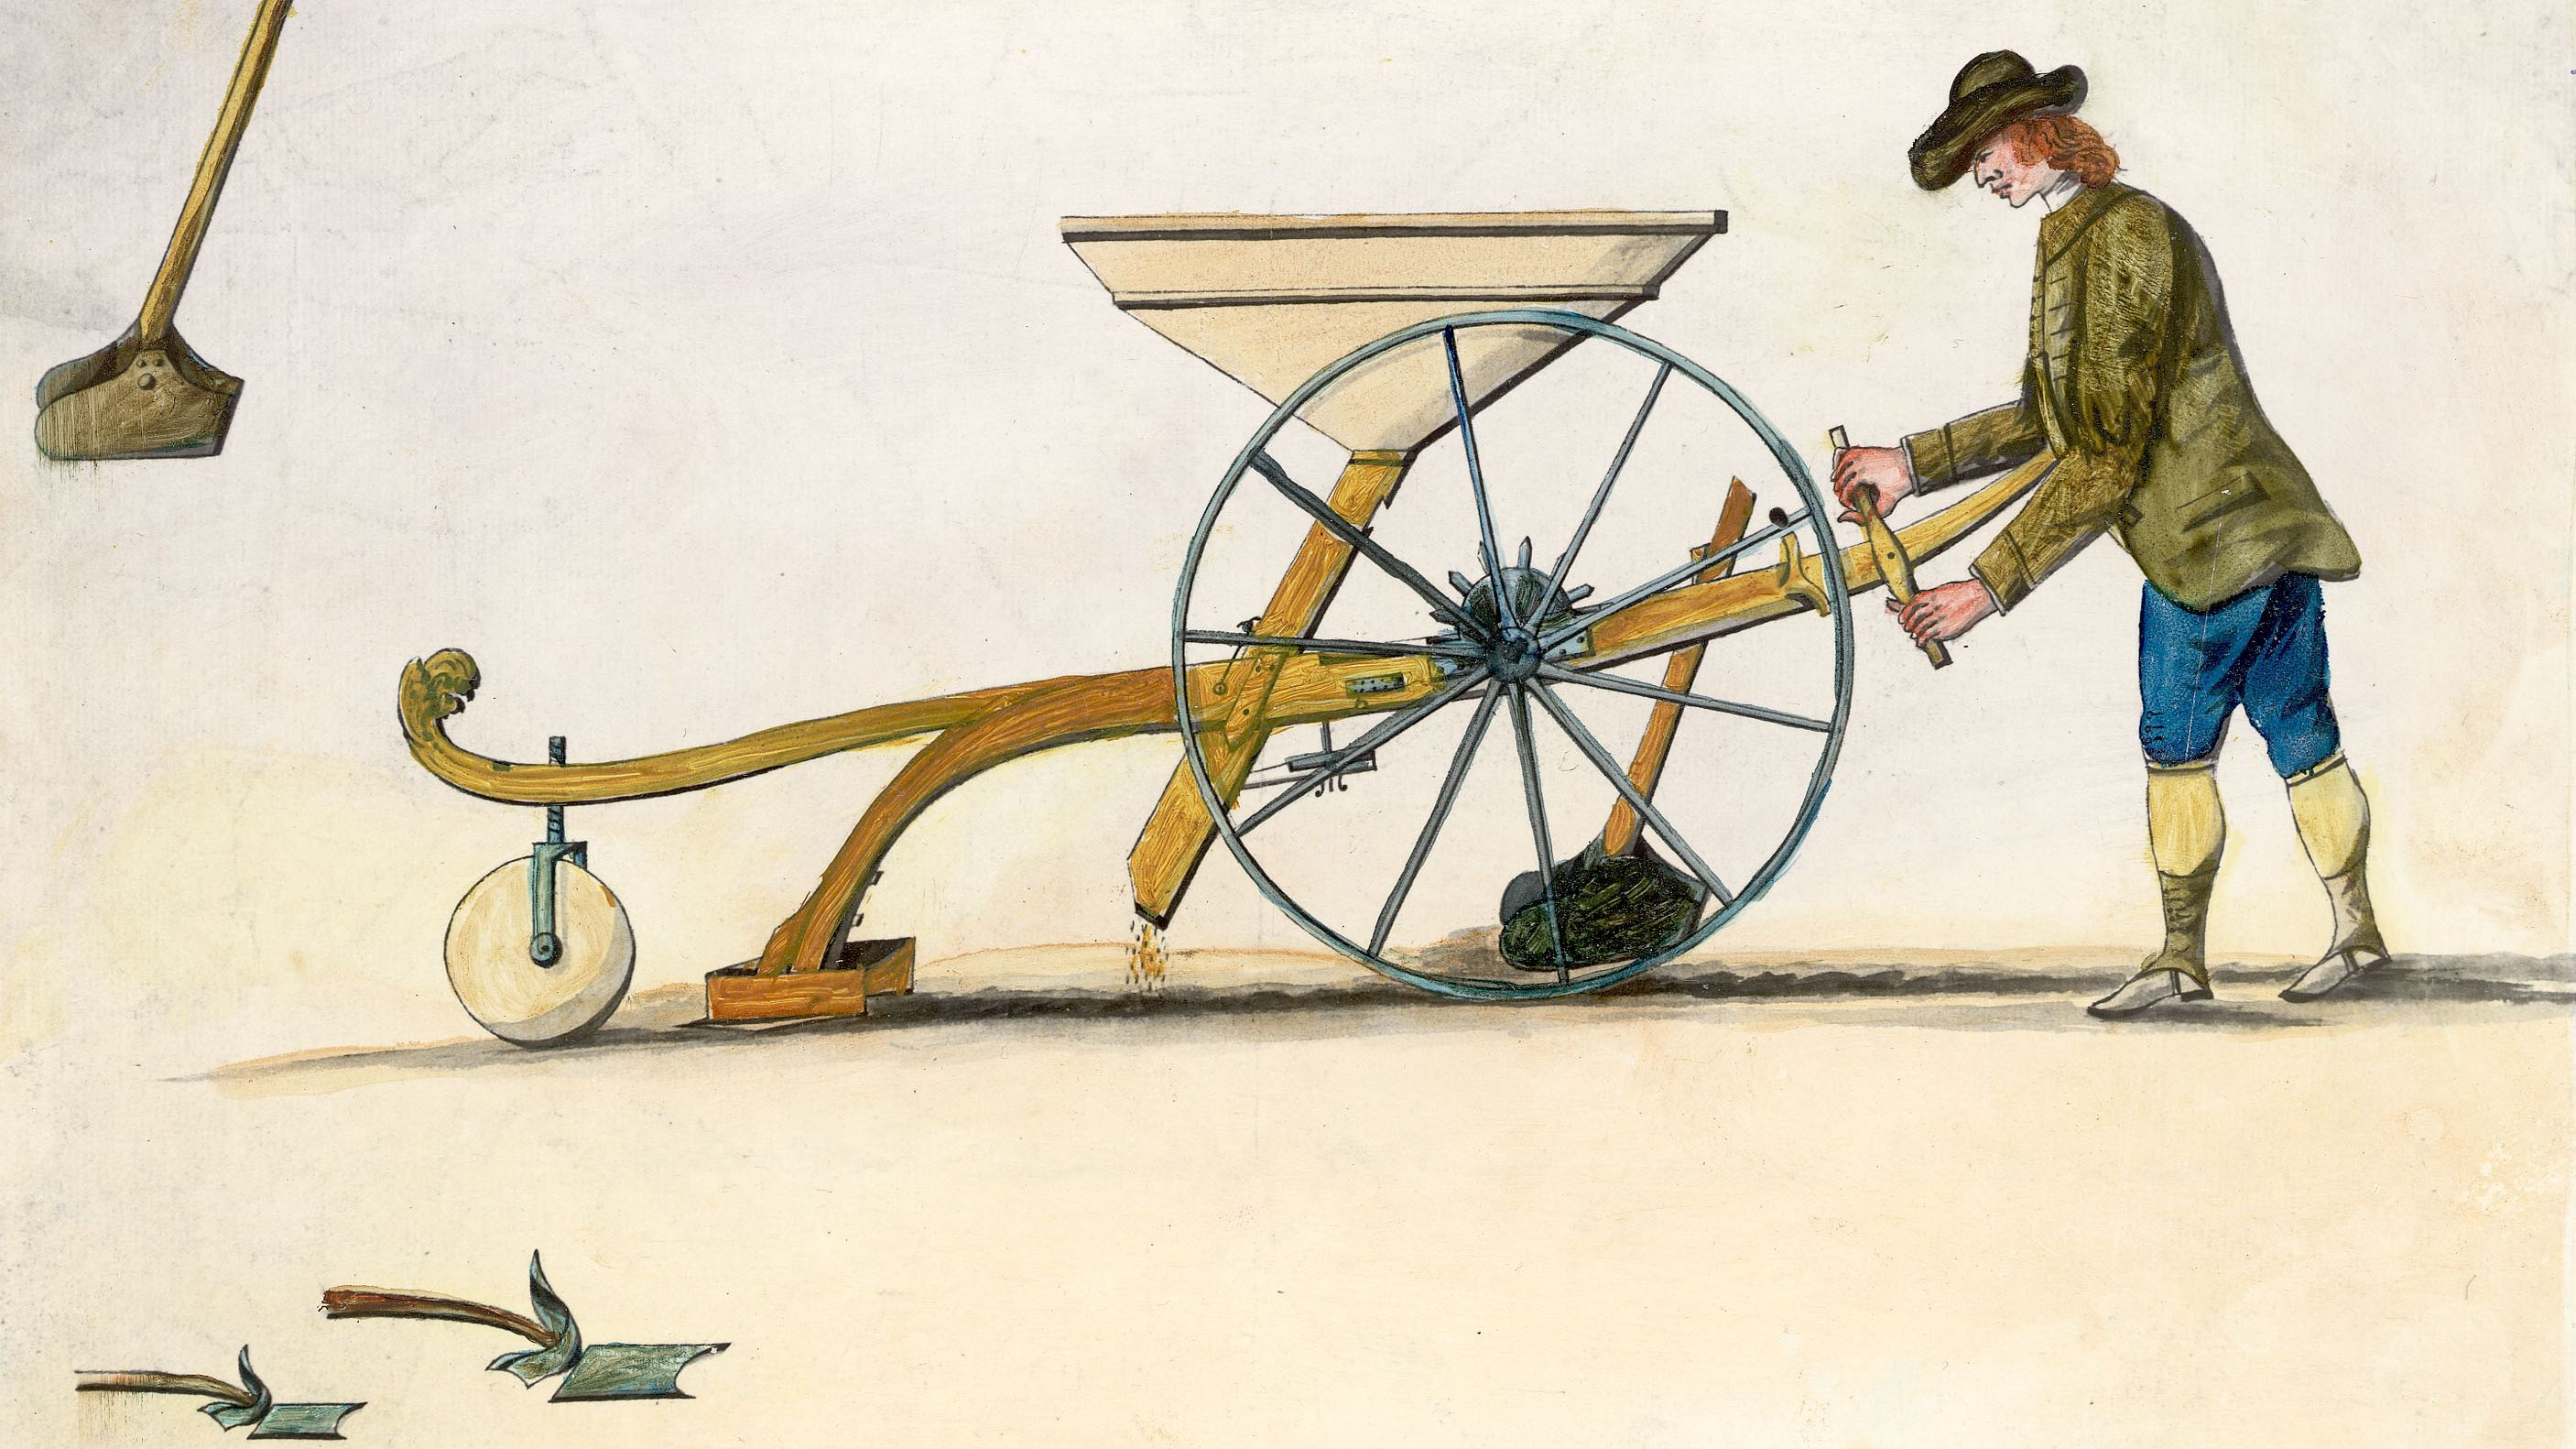 Jethro Tull and the Invention of the Seed Drill